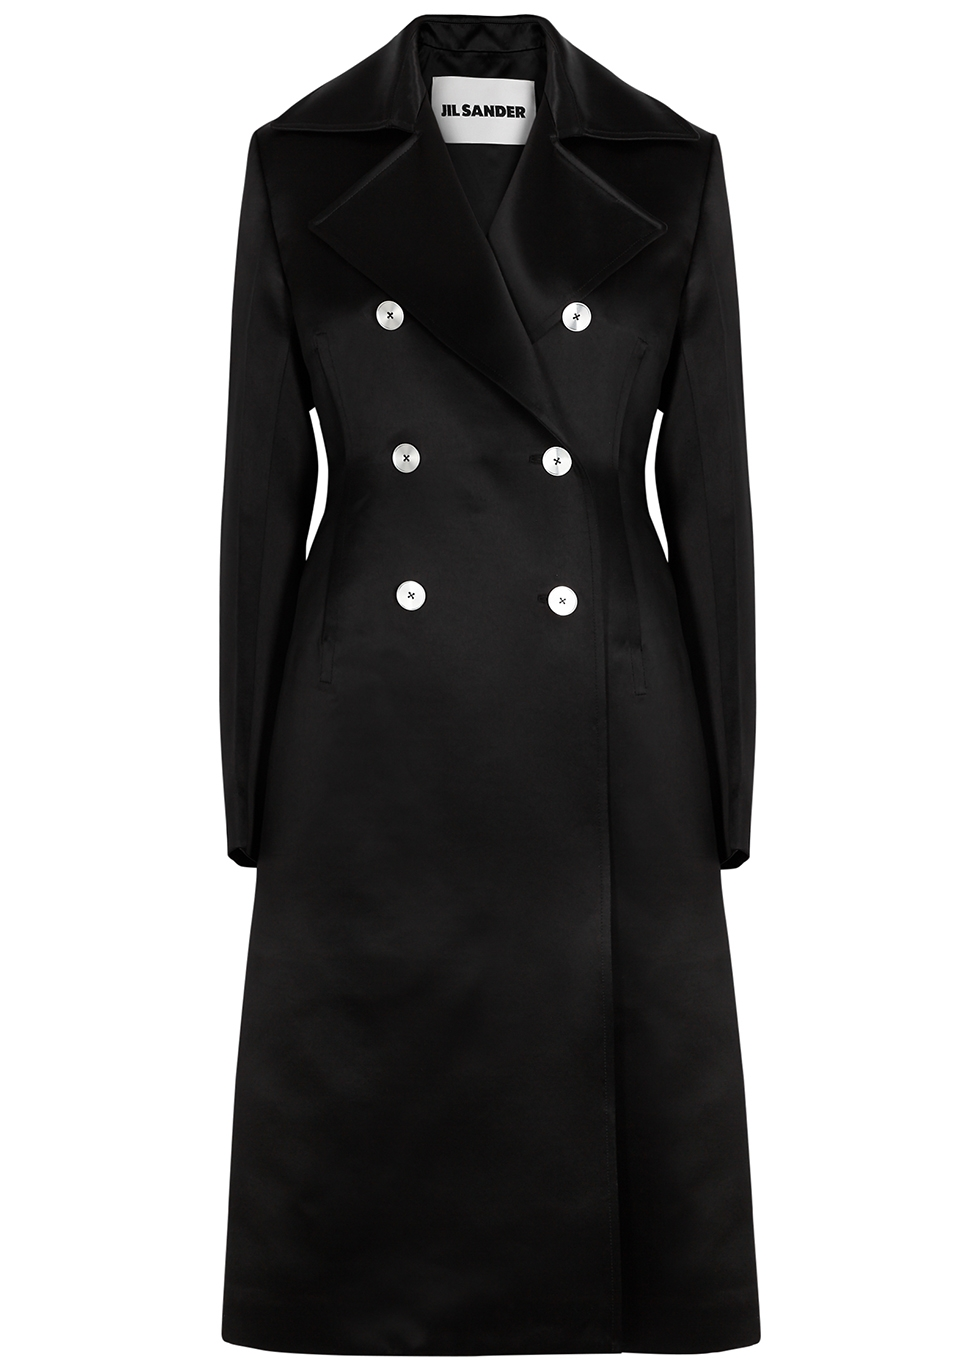 Black double-breasted satin trench coat